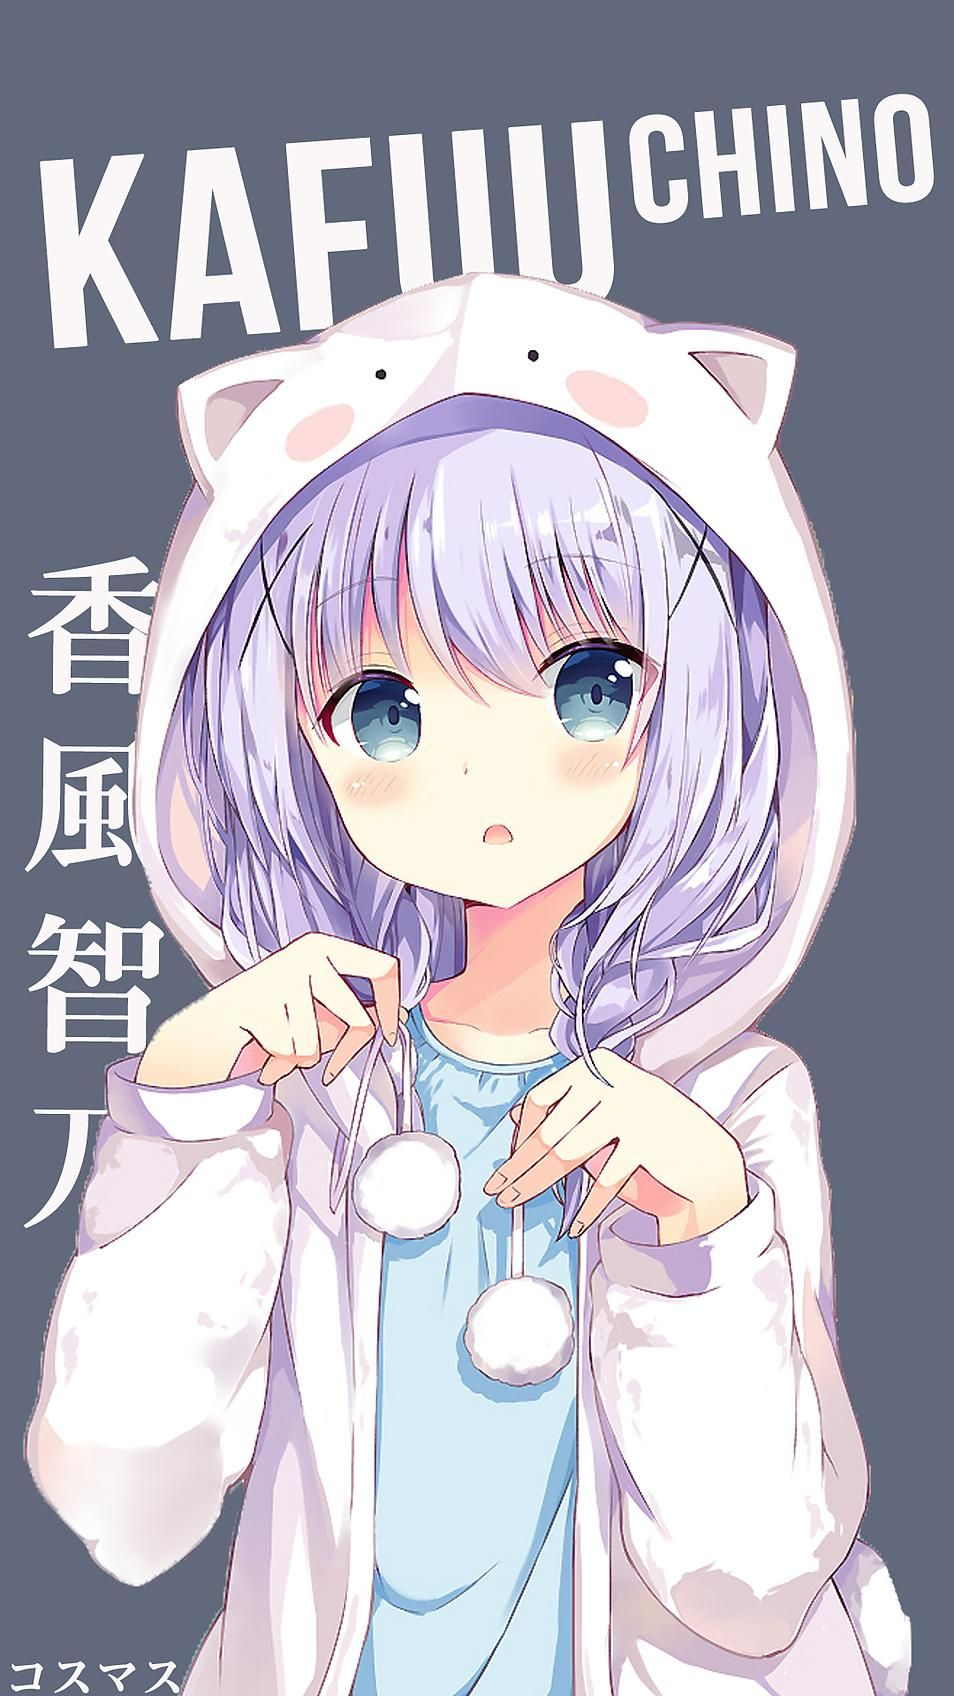 Kafuu Chino Korigengi Wallpaper Anime Korigengi Anime Anime